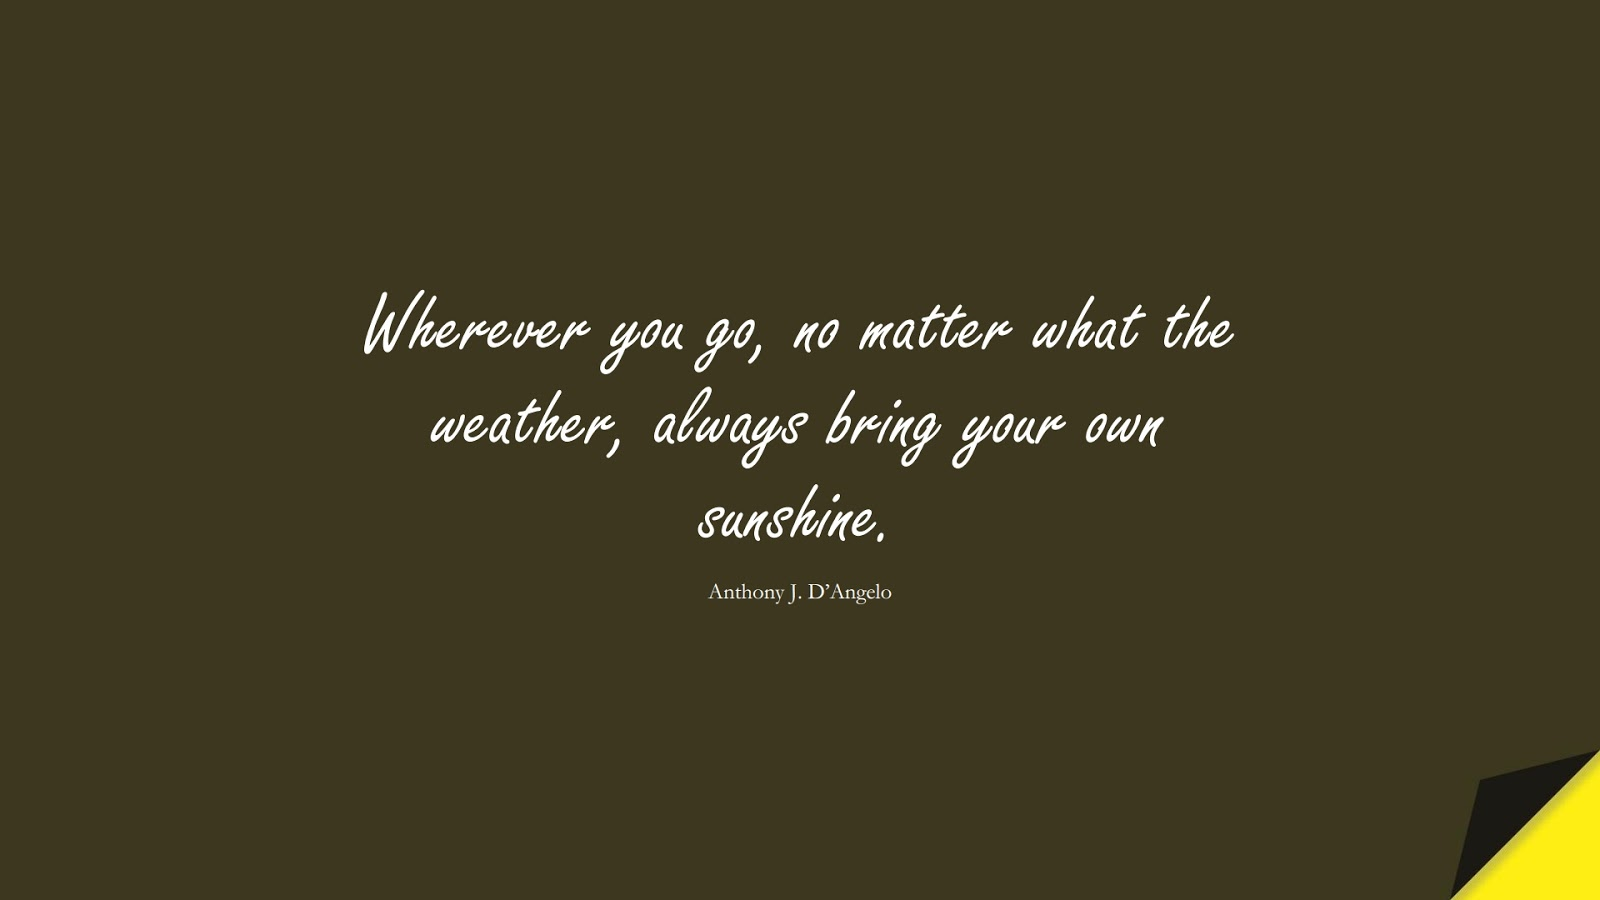 Wherever you go, no matter what the weather, always bring your own sunshine. (Anthony J. D'Angelo);  #PositiveQuotes